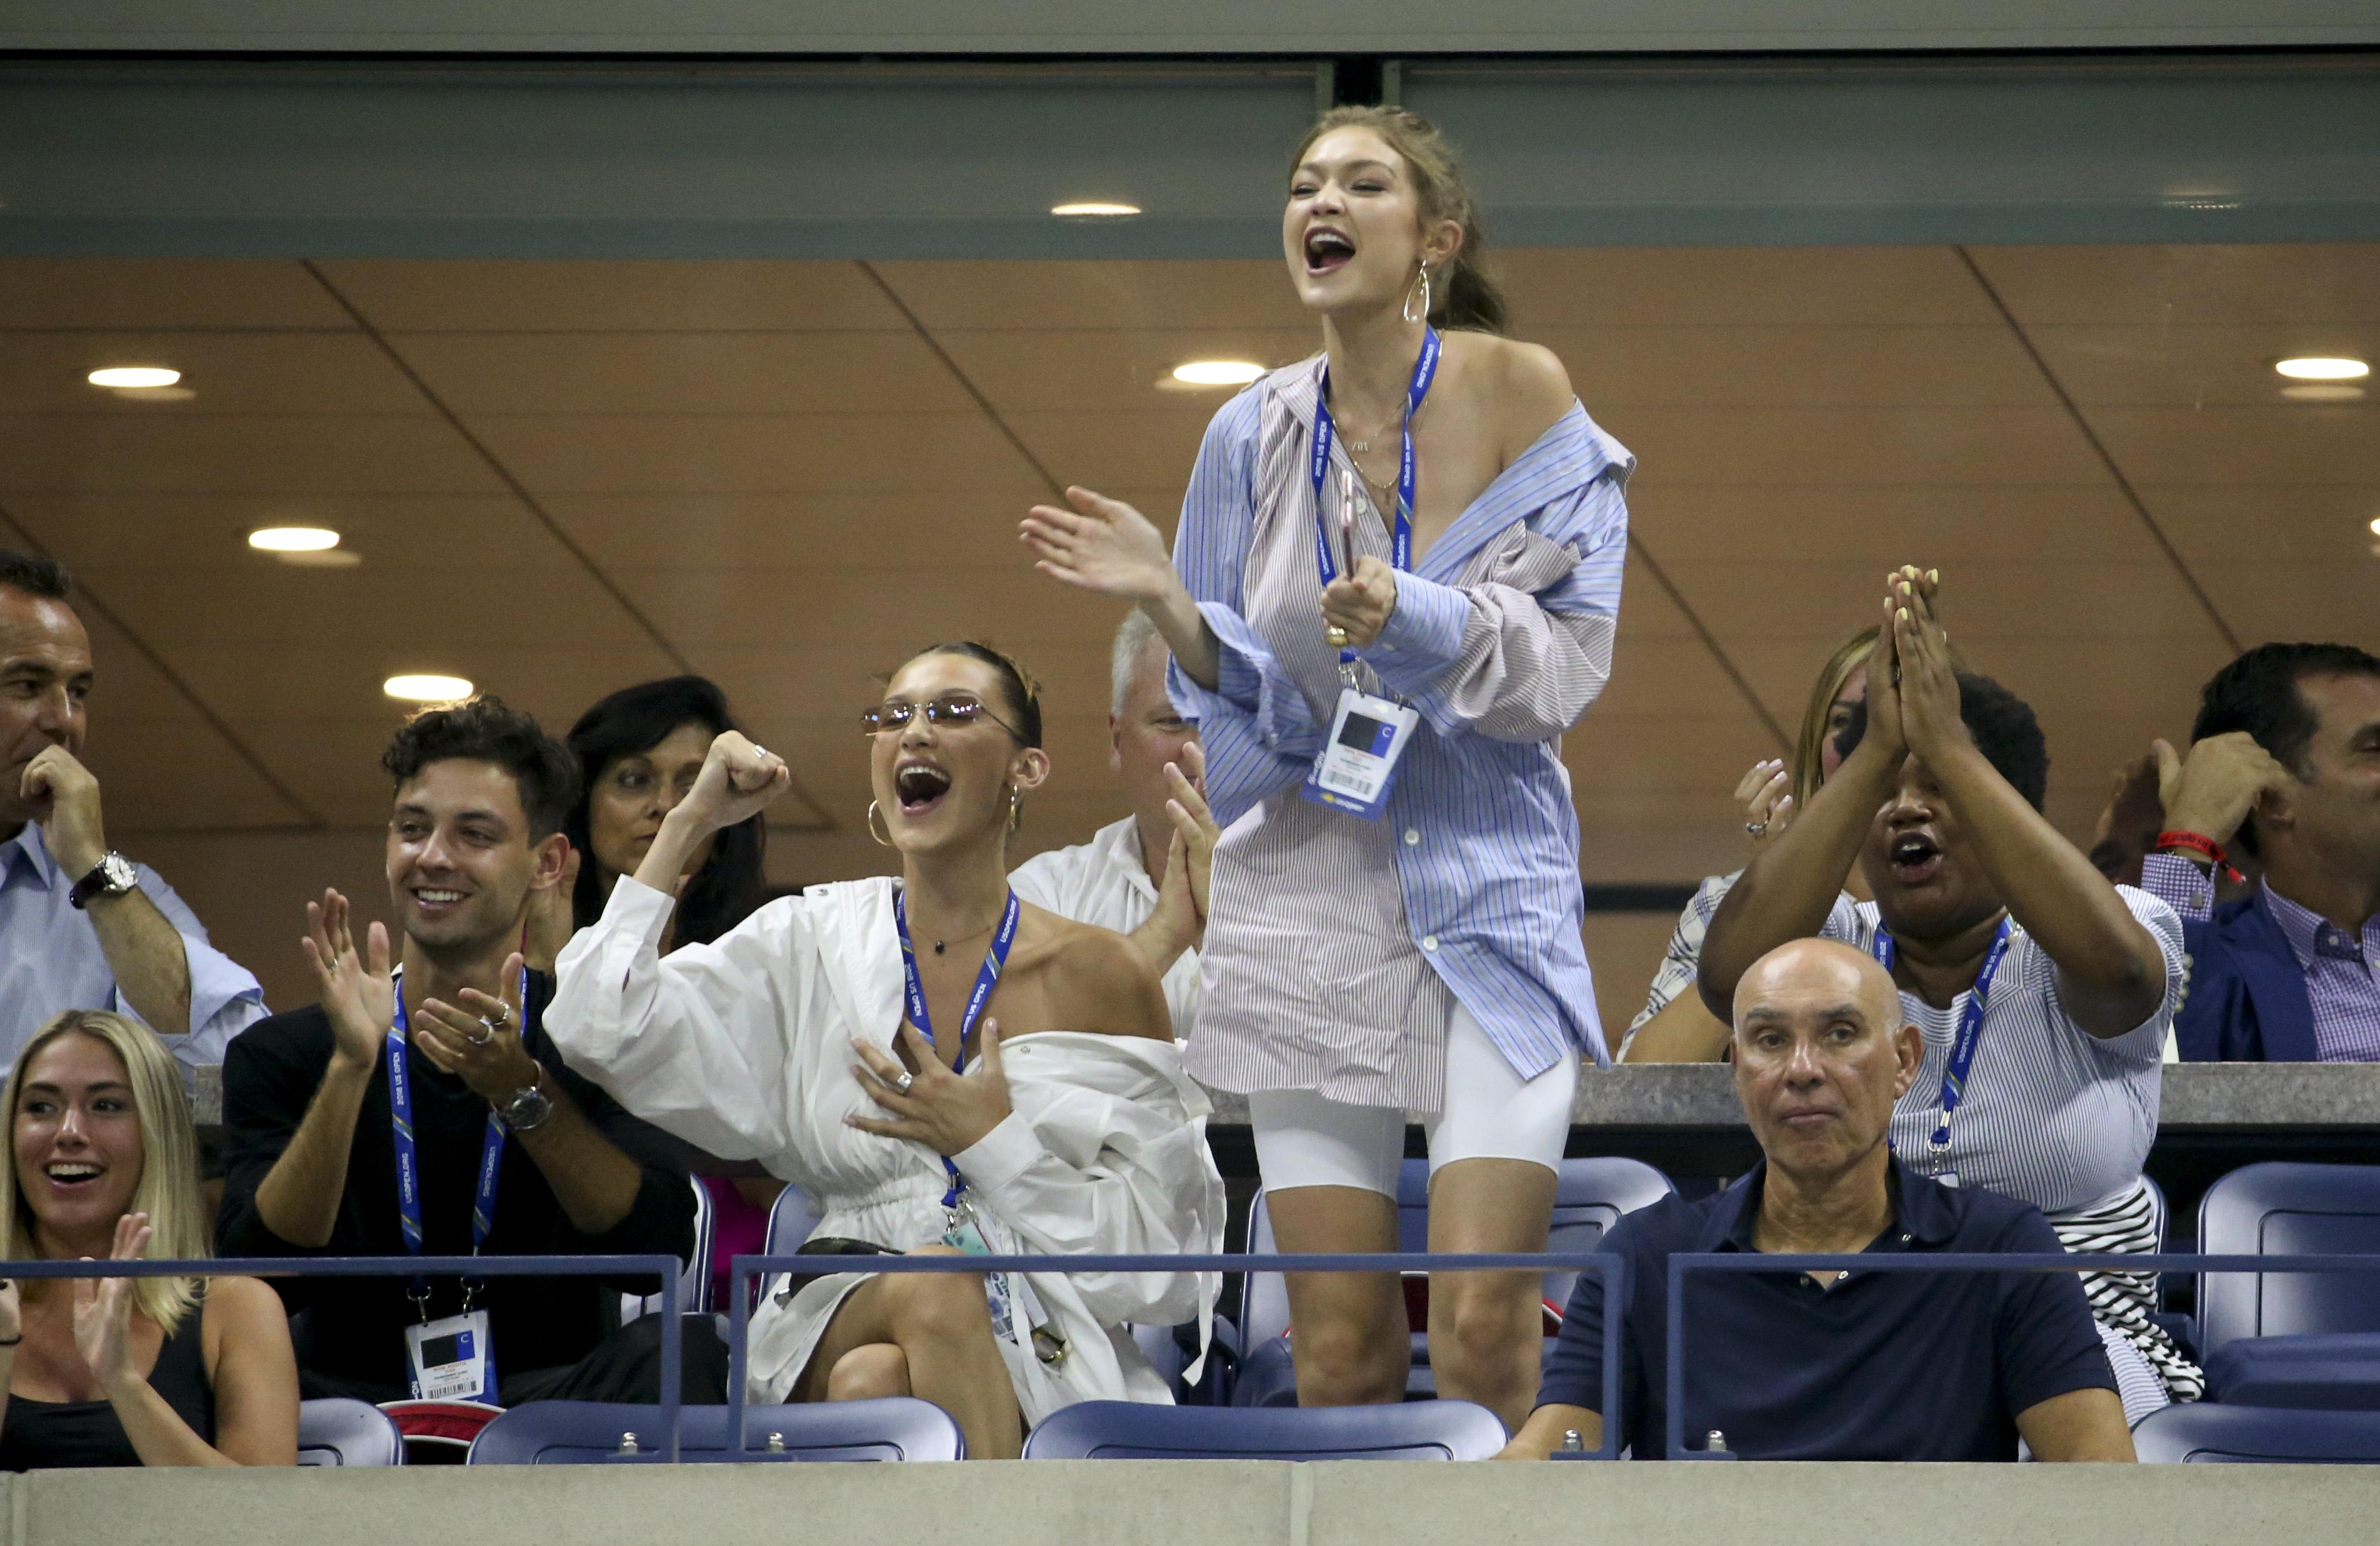 Model sisters Bella and Gigi Hadid cheer from the stands during Serena Williams' win over Karolina Pliskova